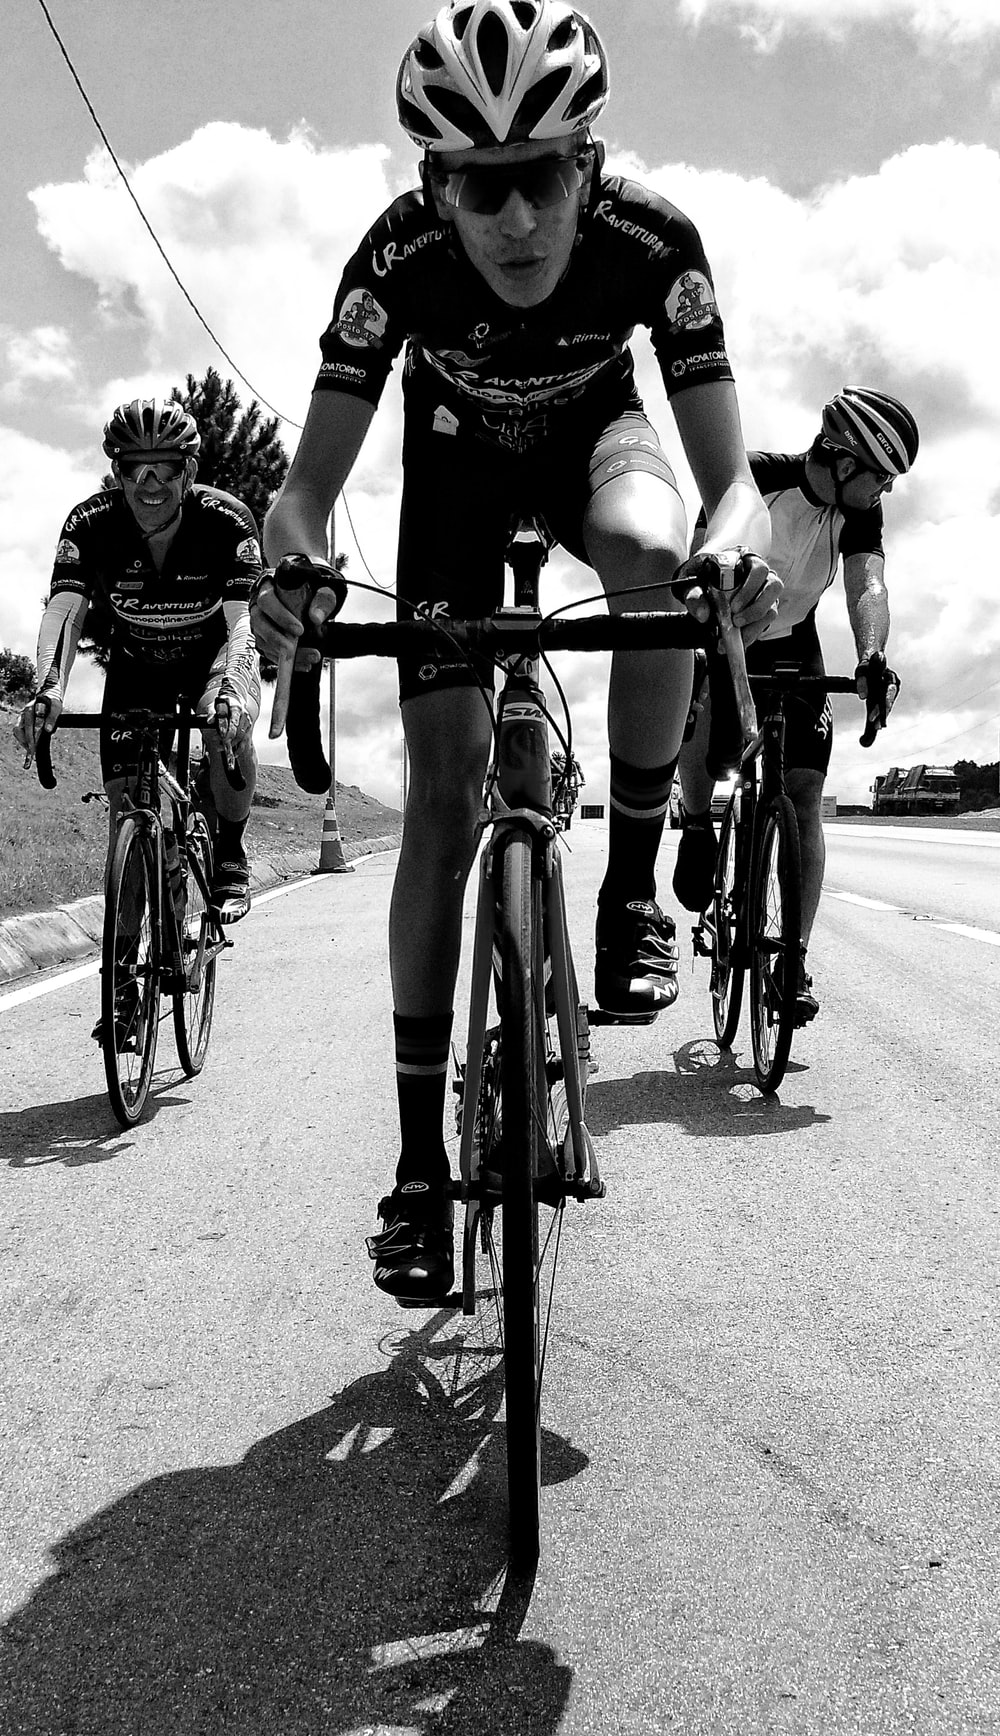 grayscale photography of unknown persons driving bicycle outdoors